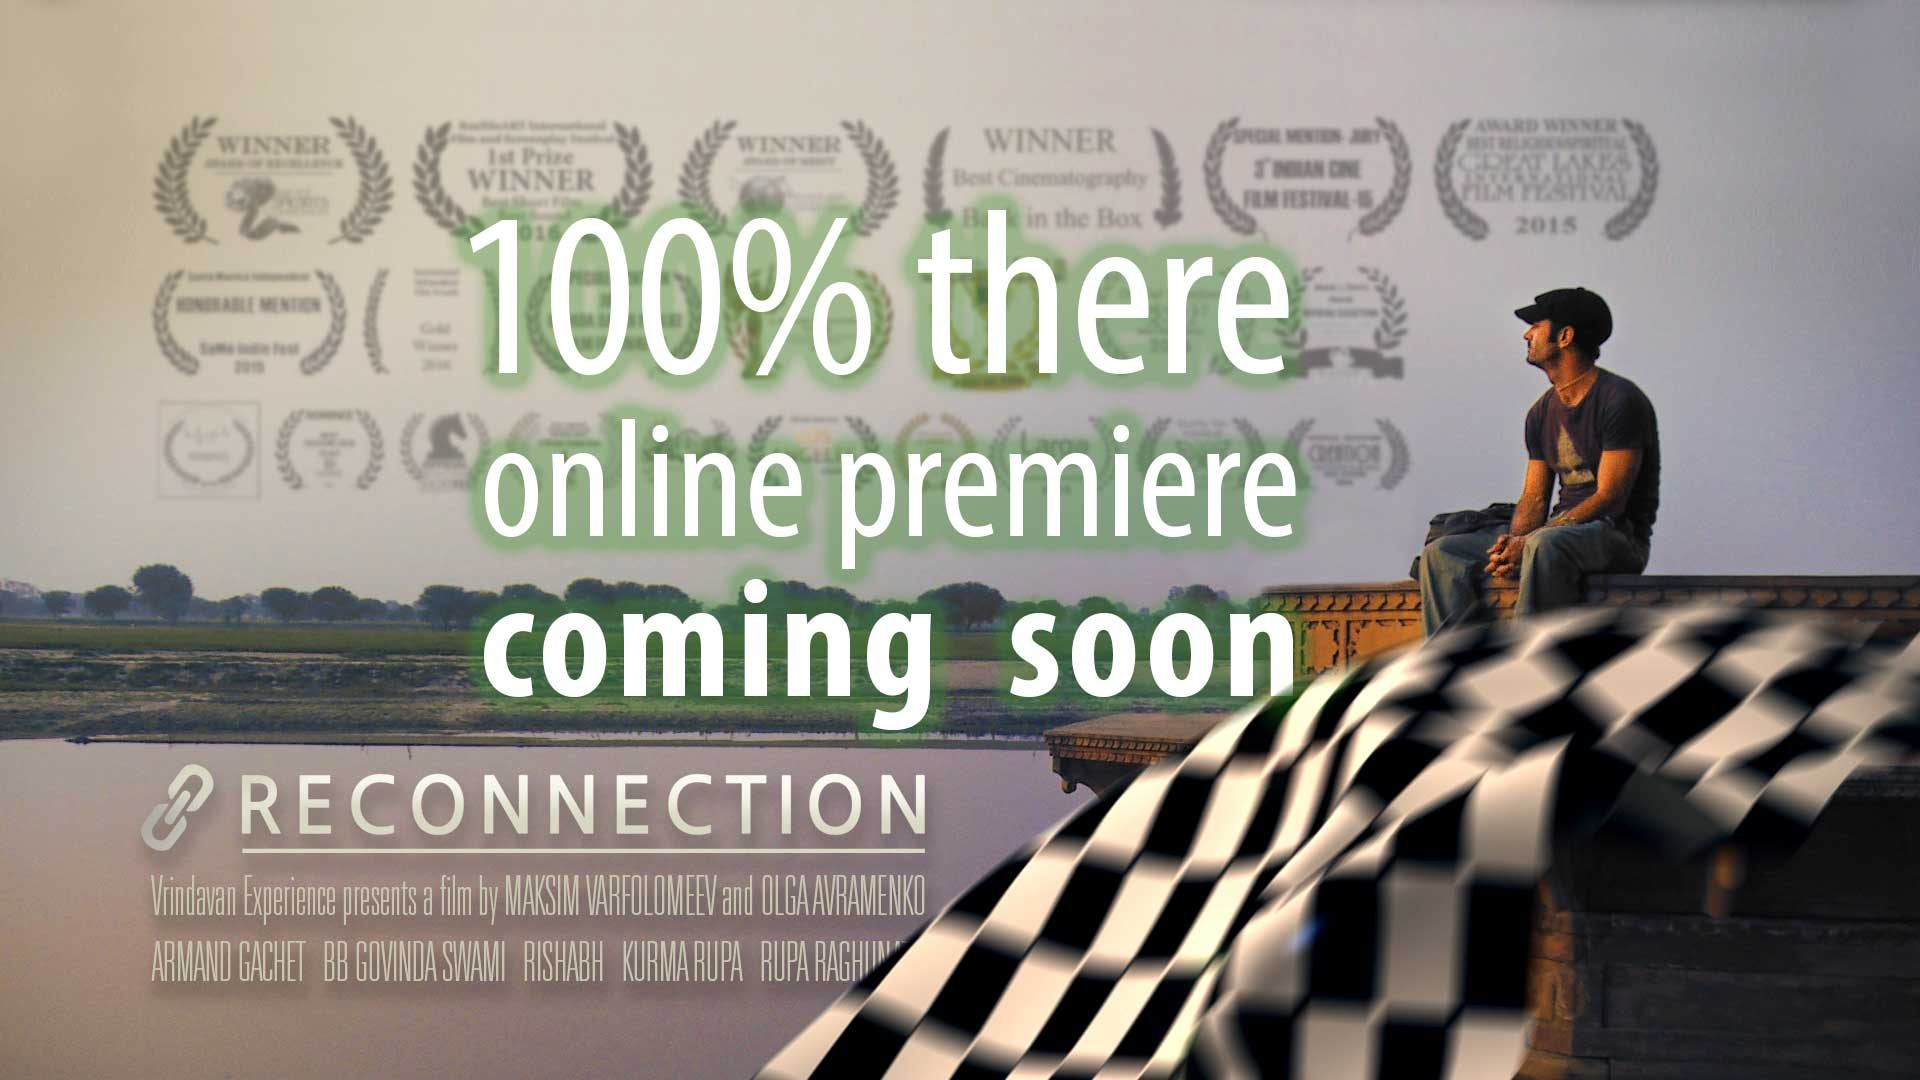 'Show Reconnection to the World' campaign: 100% success, Online Premiere is coming soon!